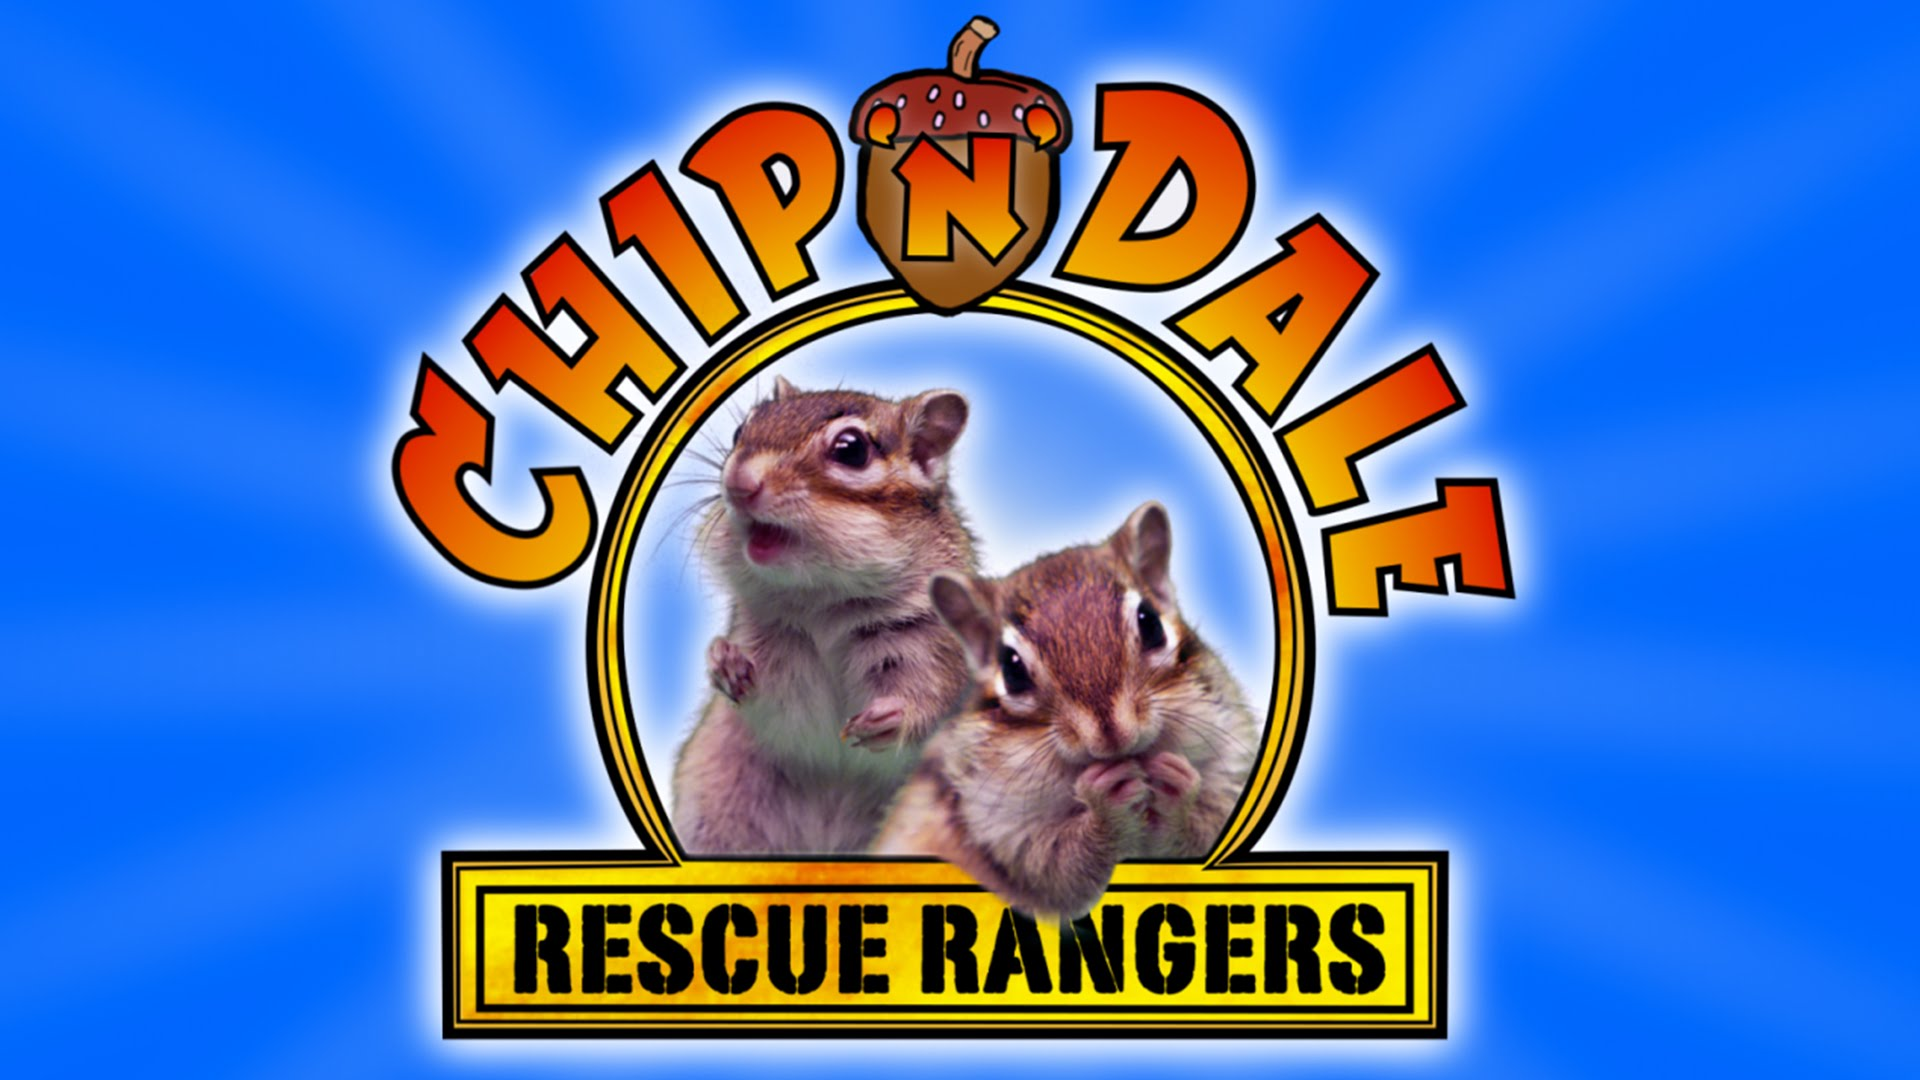 Chip 'n Dale Rescue Rangers With Real Chipmunks